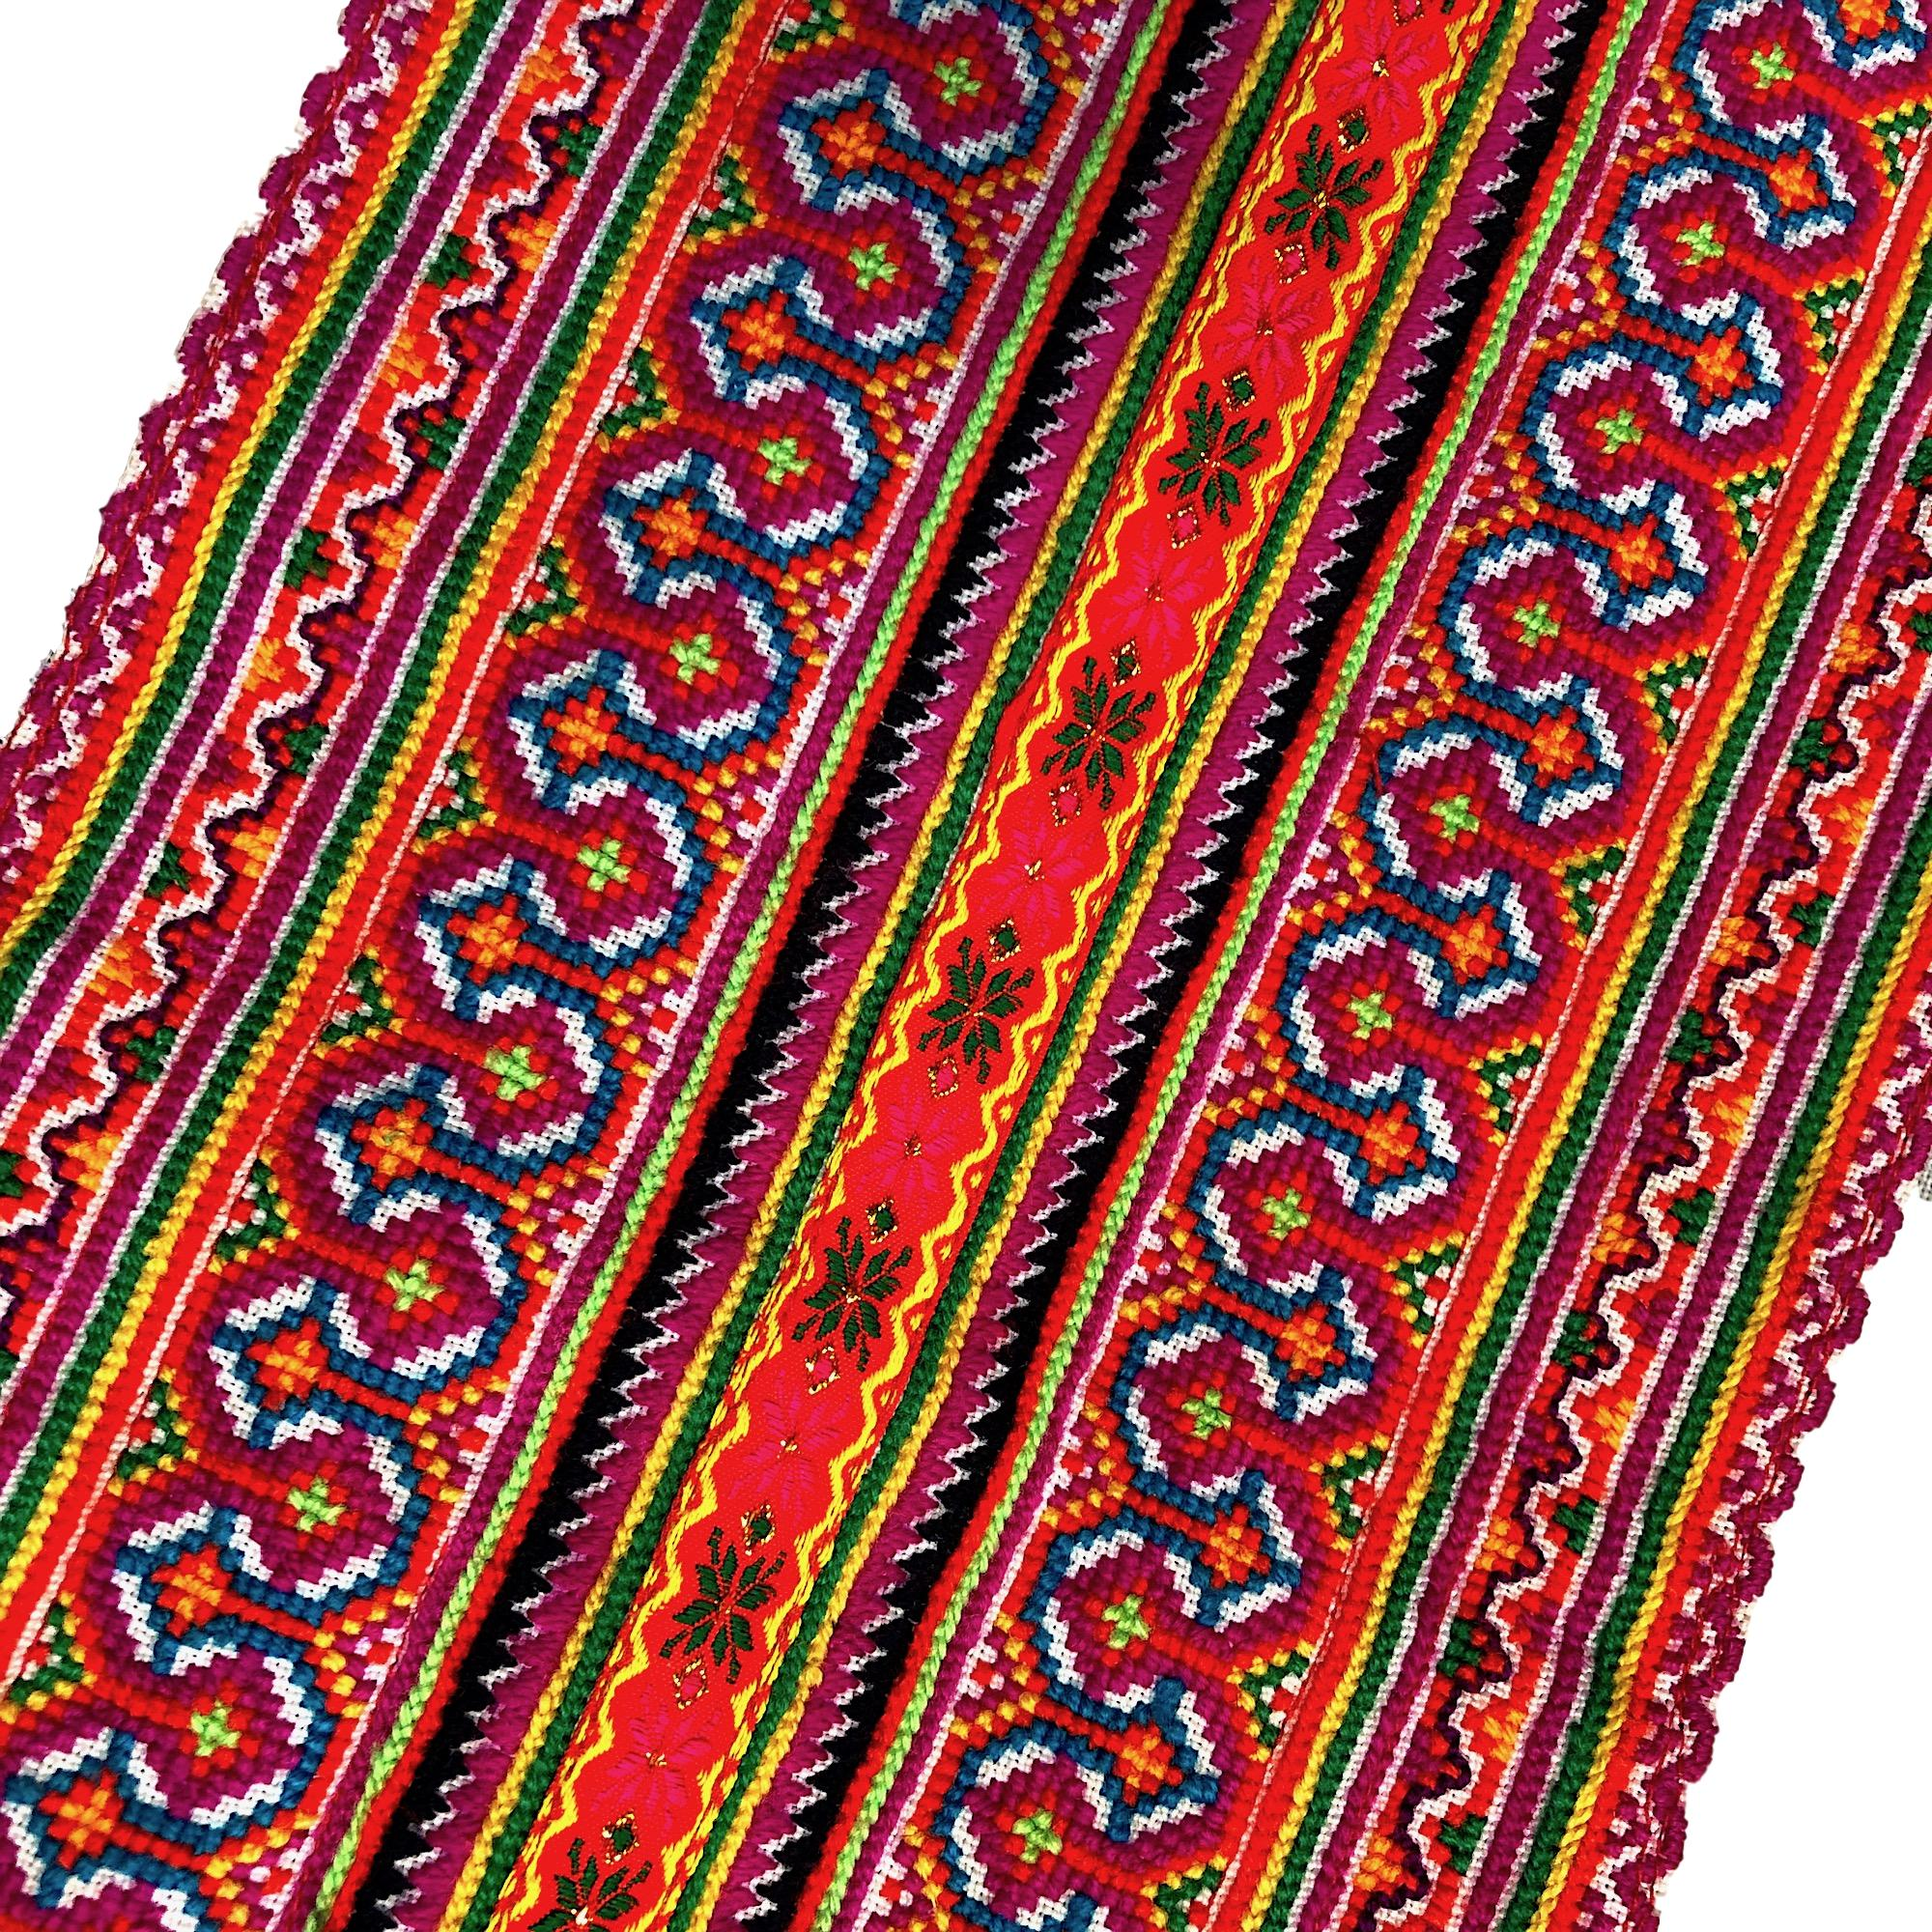 Hmong Cross Stitch Panel for your Decor Projects - Pallu Design